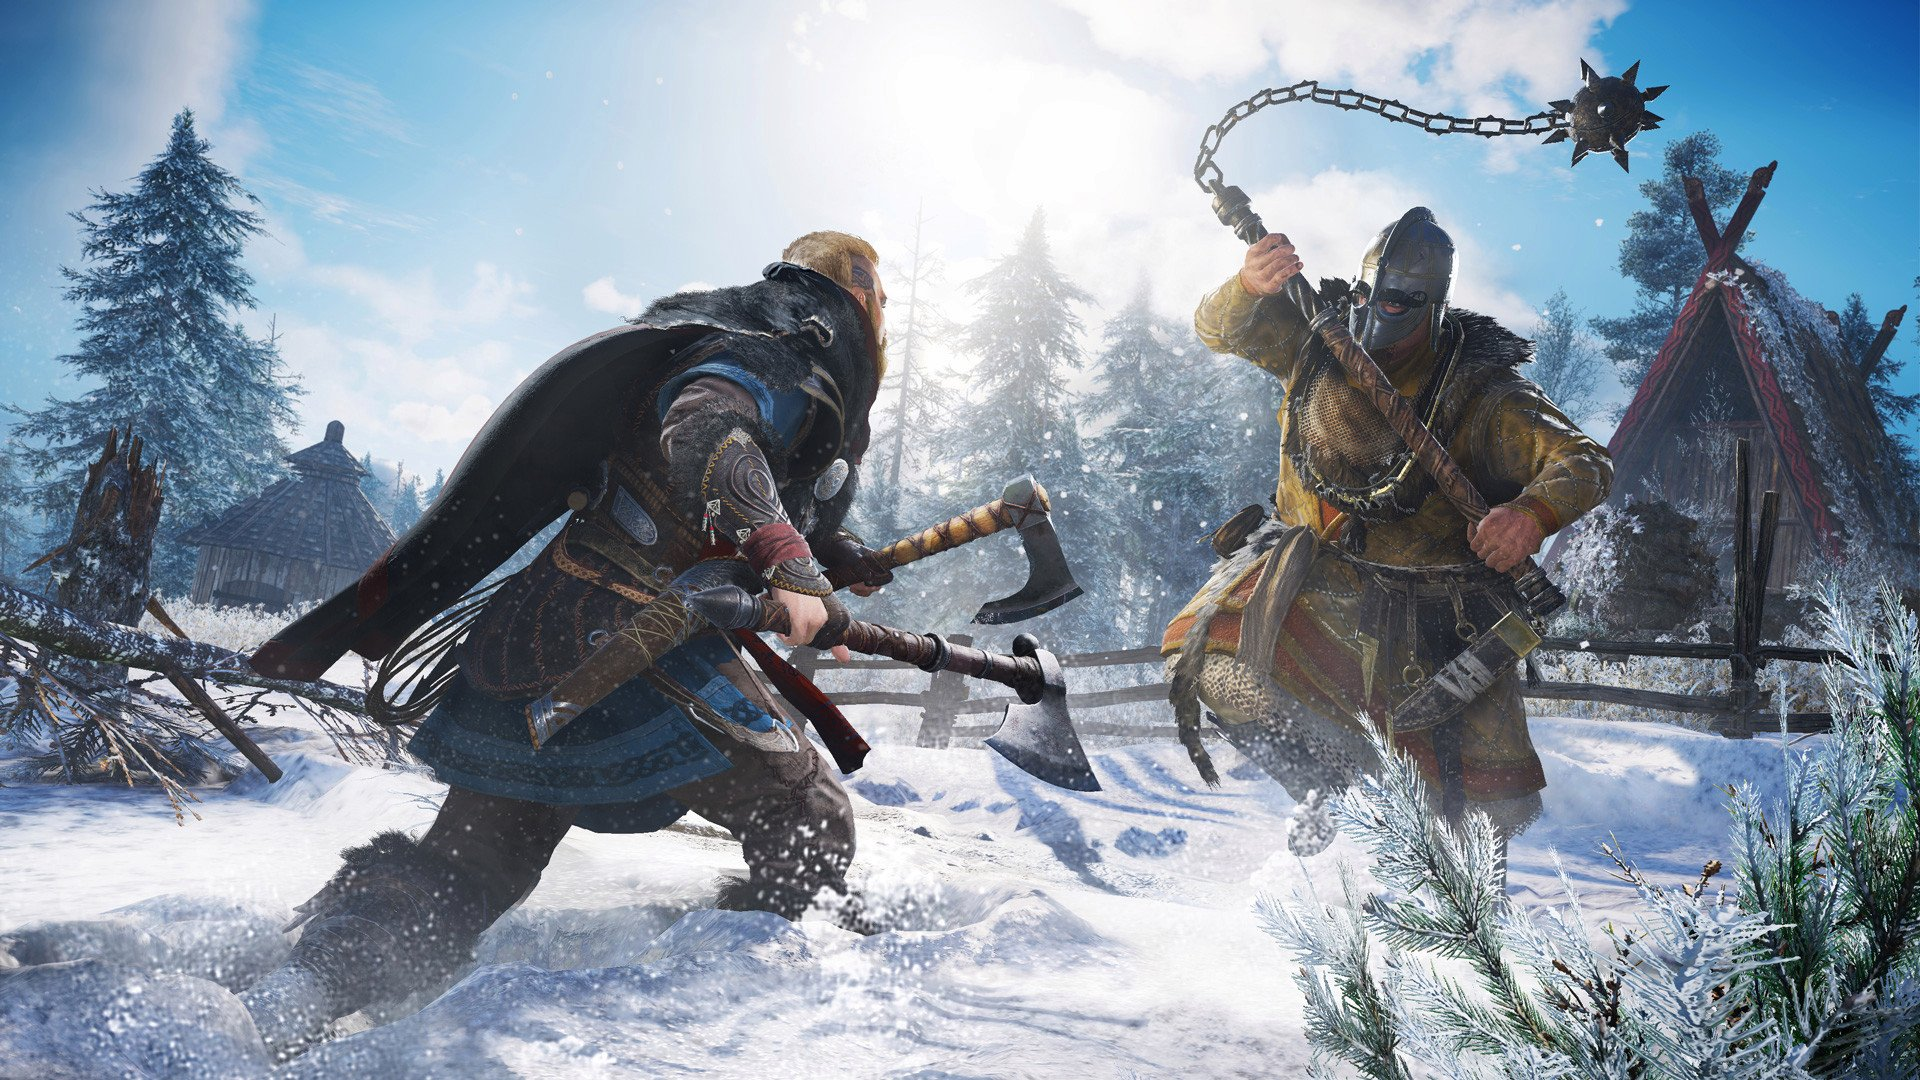 Ubisoft Reveals File Size For Assassin's Creed: Valhalla And Provide Day-One Patch Notes